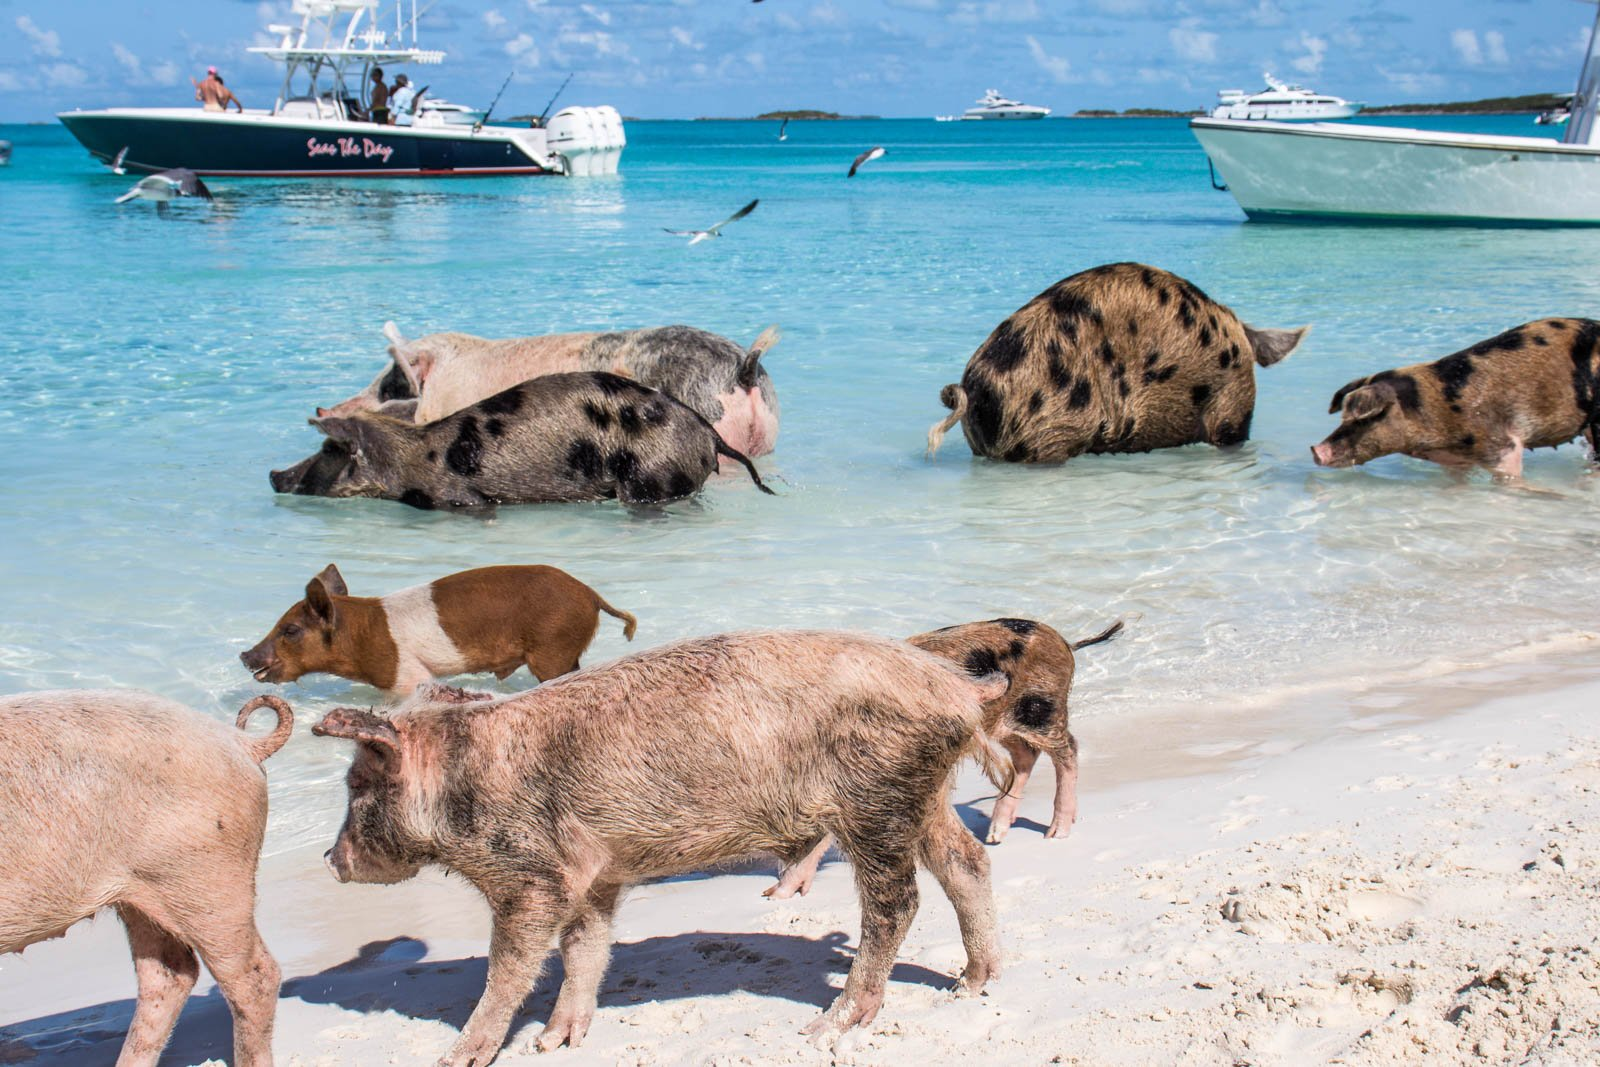 Here at Pig Beach Bahamas, life moves slower and the views are better. Take an Exuma Pig Beach day tour to go swimming with pigs.